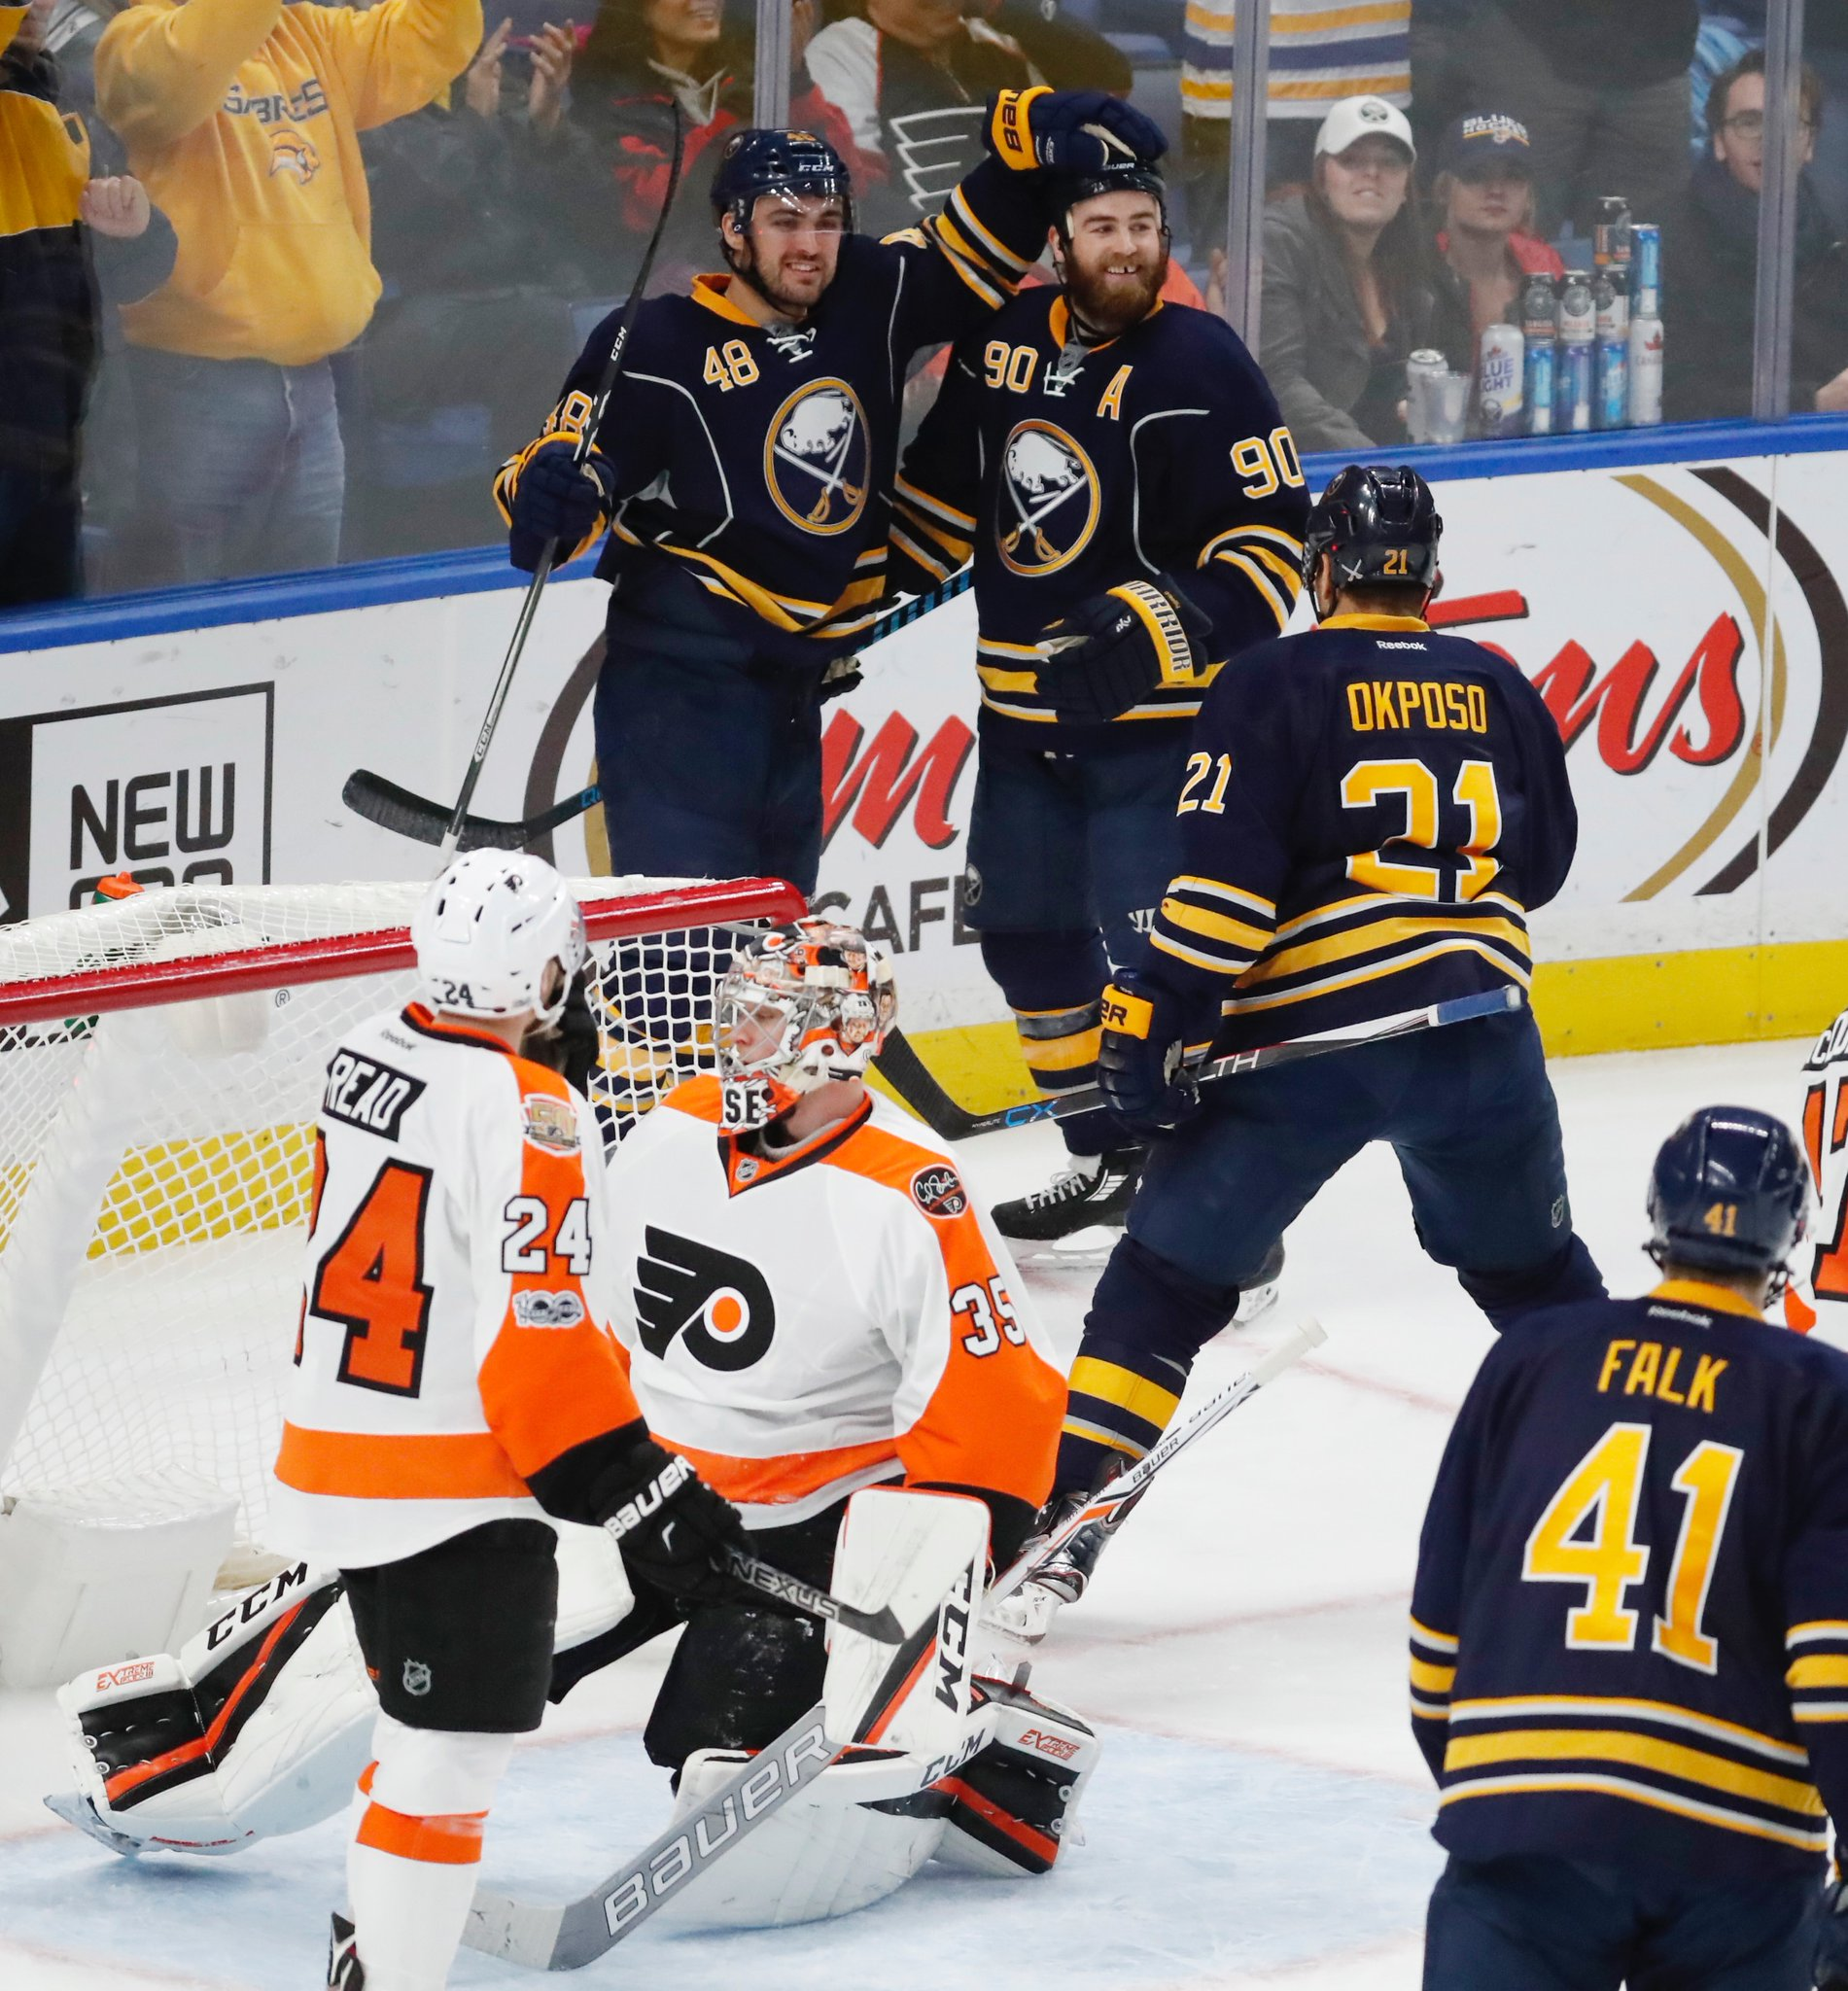 William Carrier (48) celebrates his goal Tuesday with Ryan O'Reilly and Kyle Okposo. (Harry Scull Jr./Buffalo News)